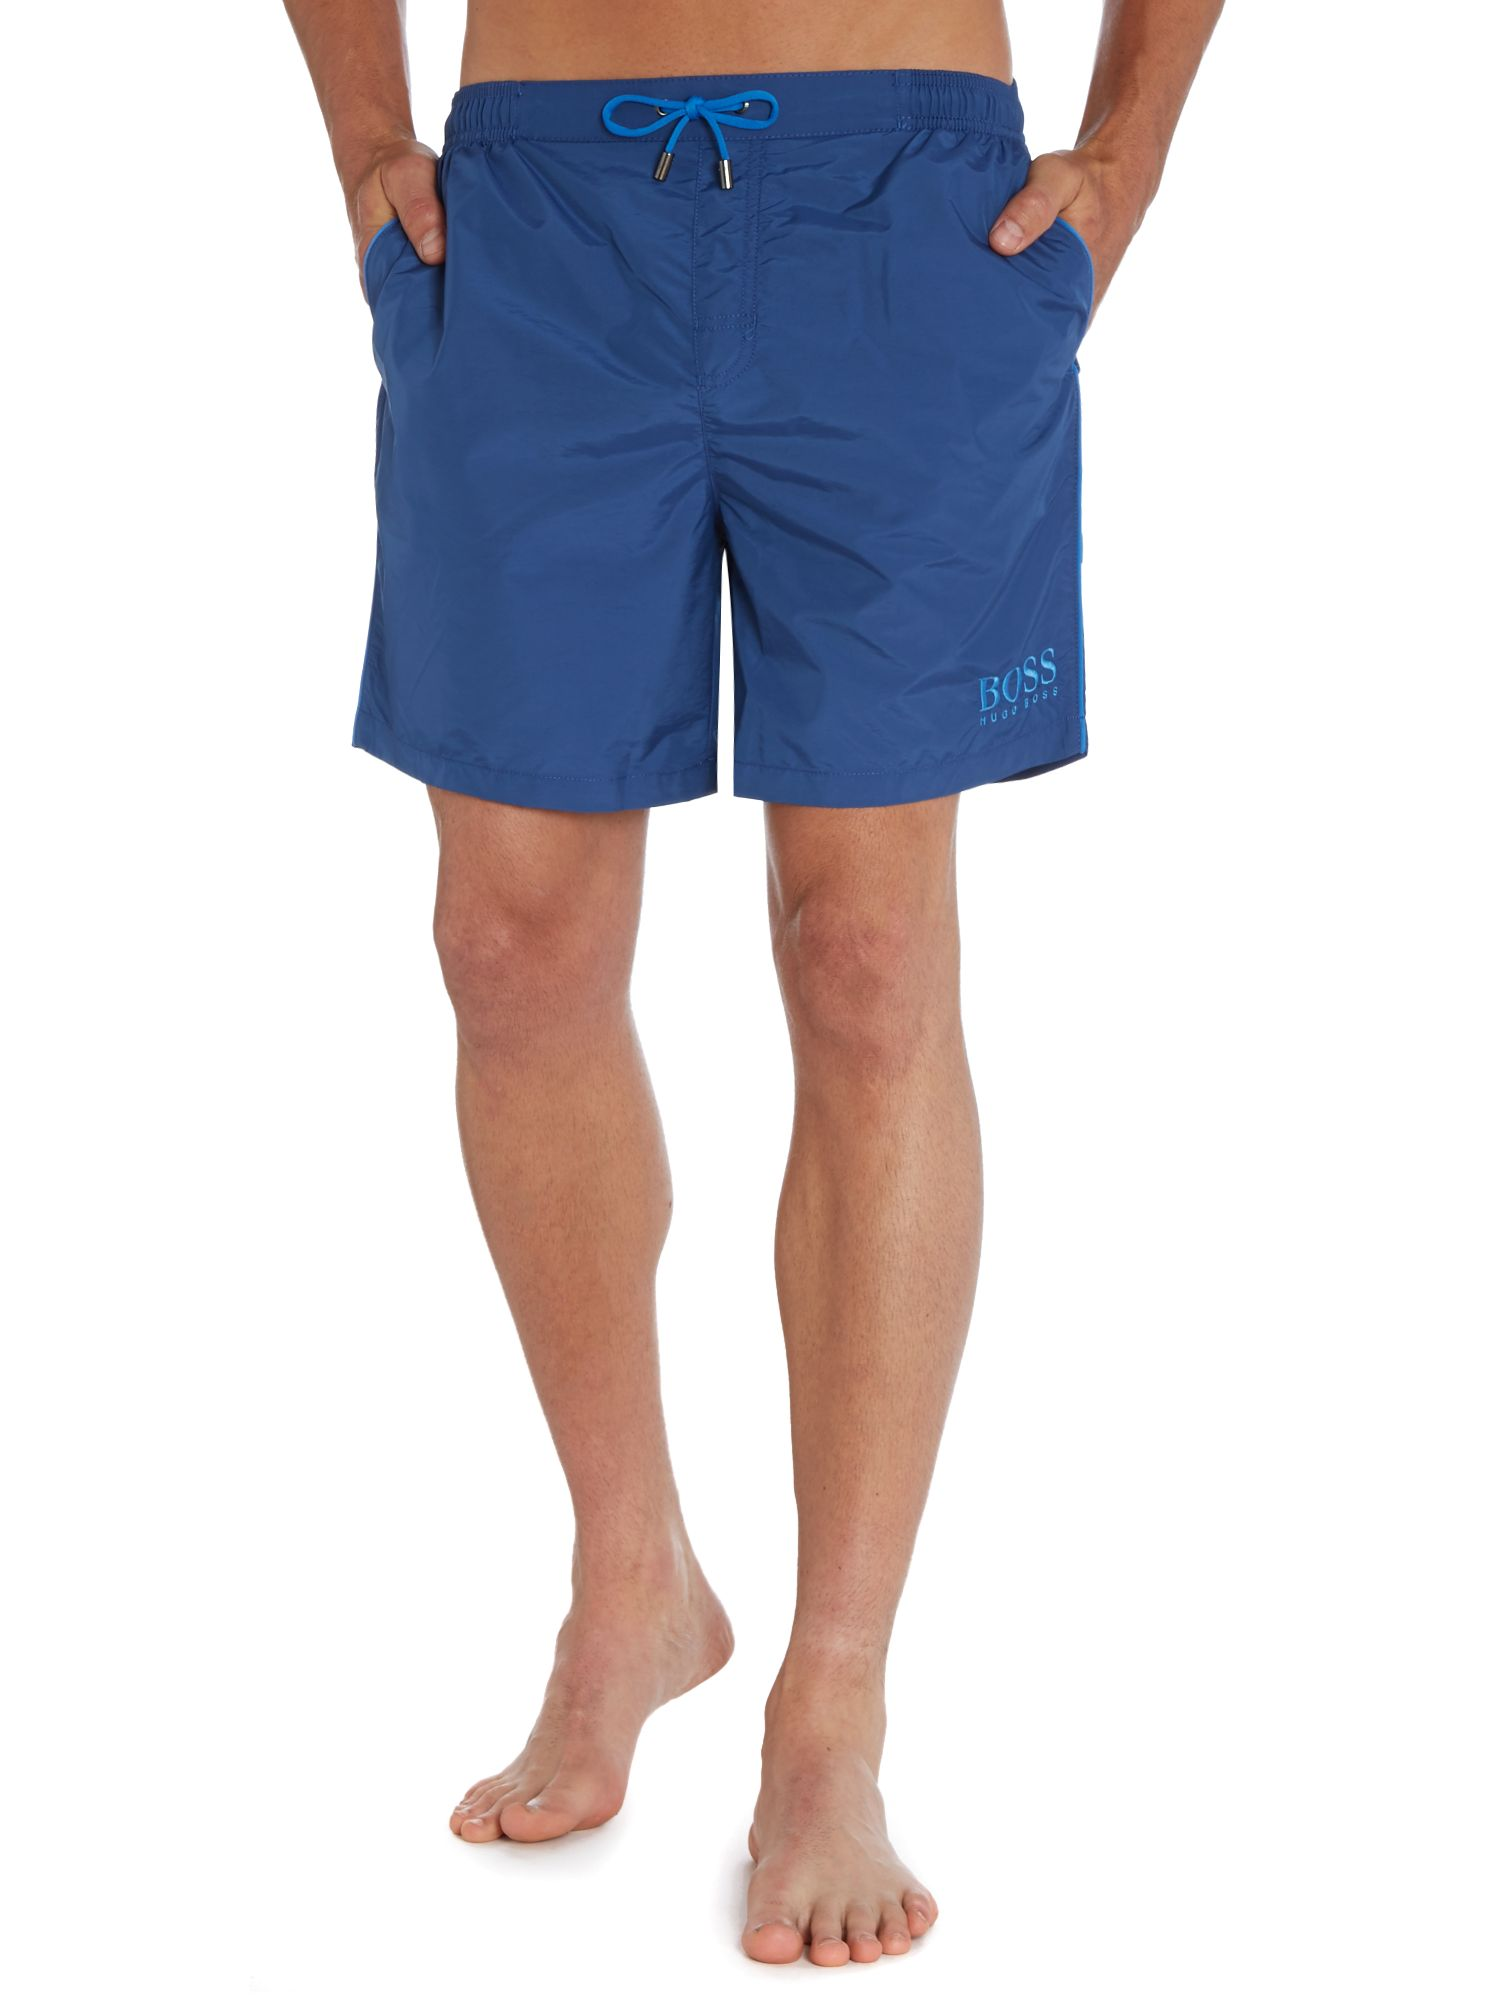 Barracuda swim short